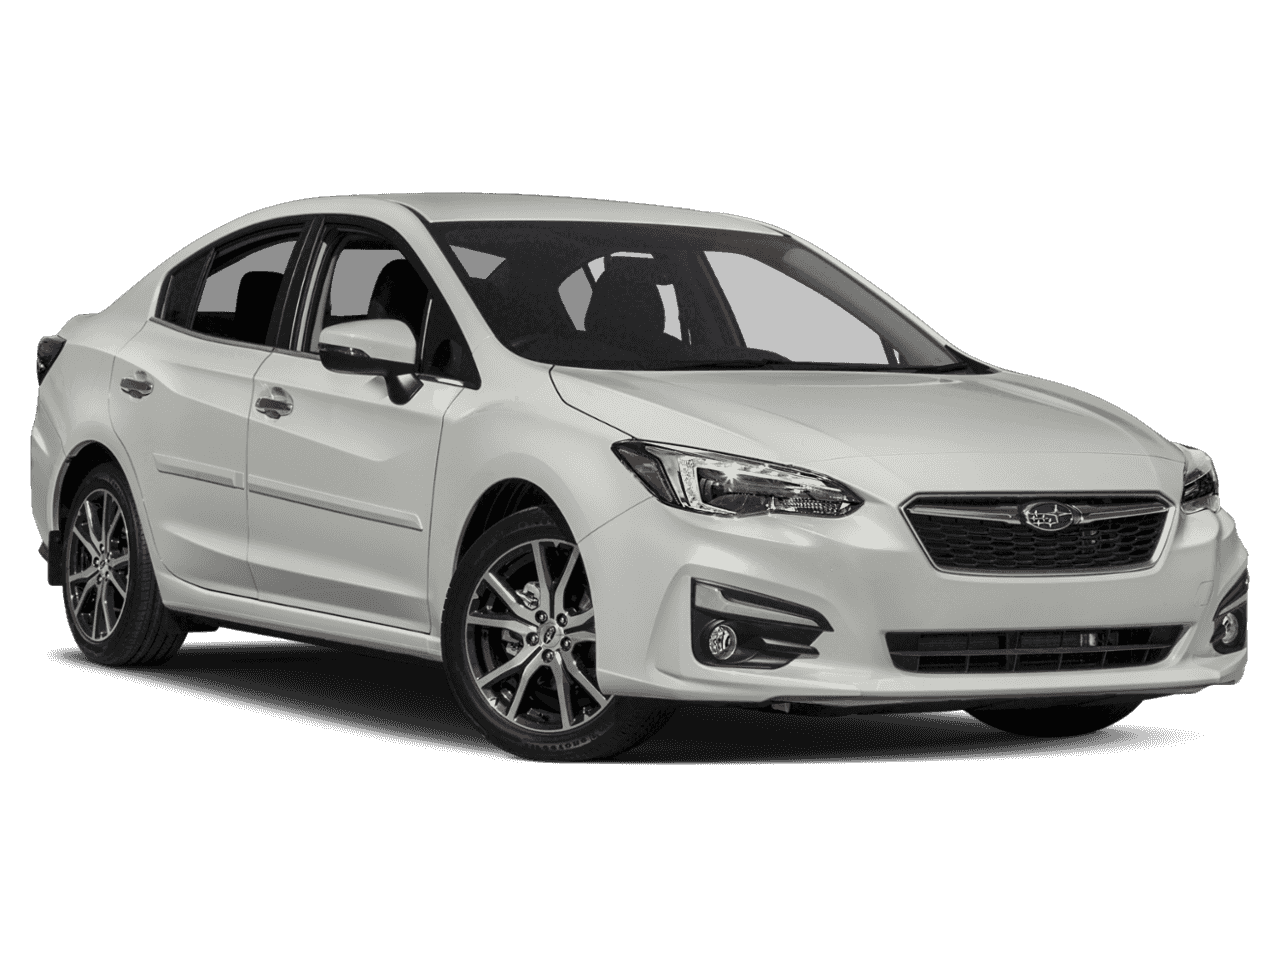 2019 Subaru Impreza 2.0i Limited With Navigation & AWD